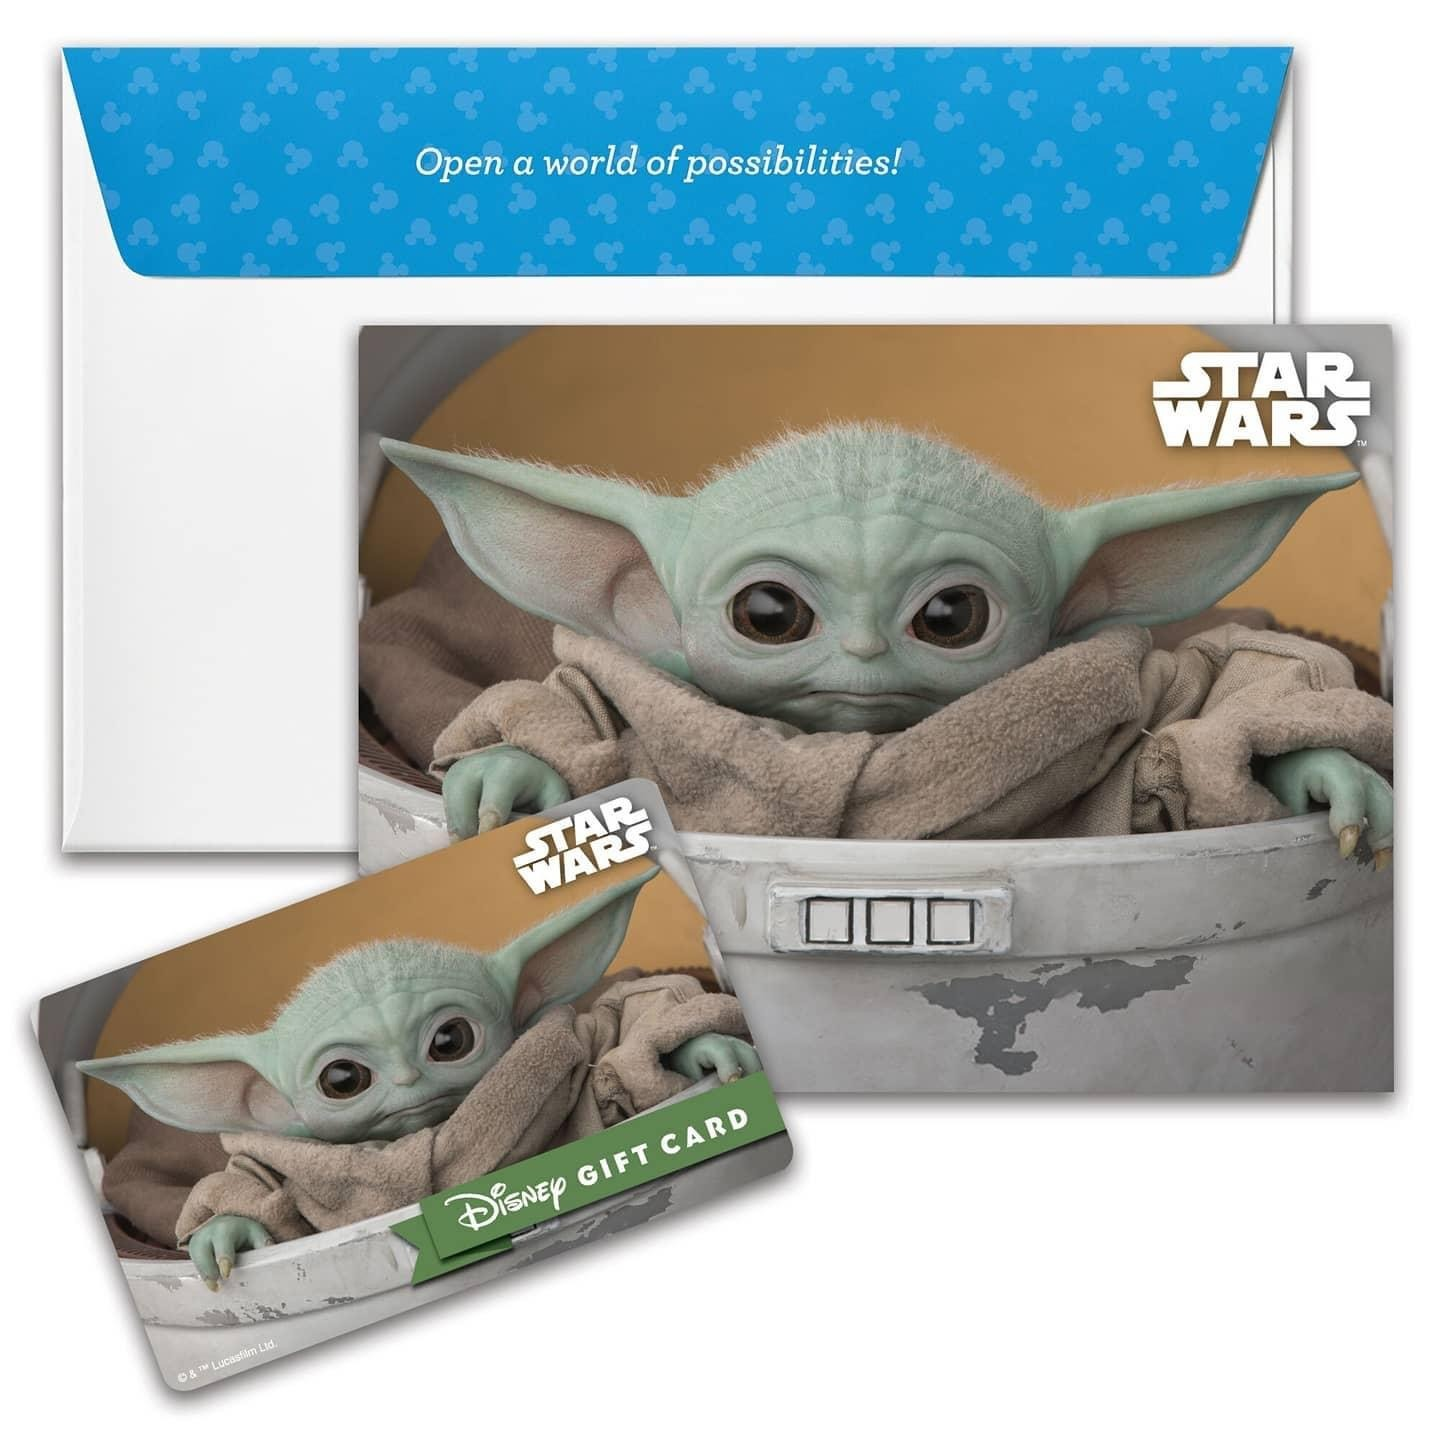 New Disney Gift Card Designs for Your Holiday Gift Giving from shopDisney! 2